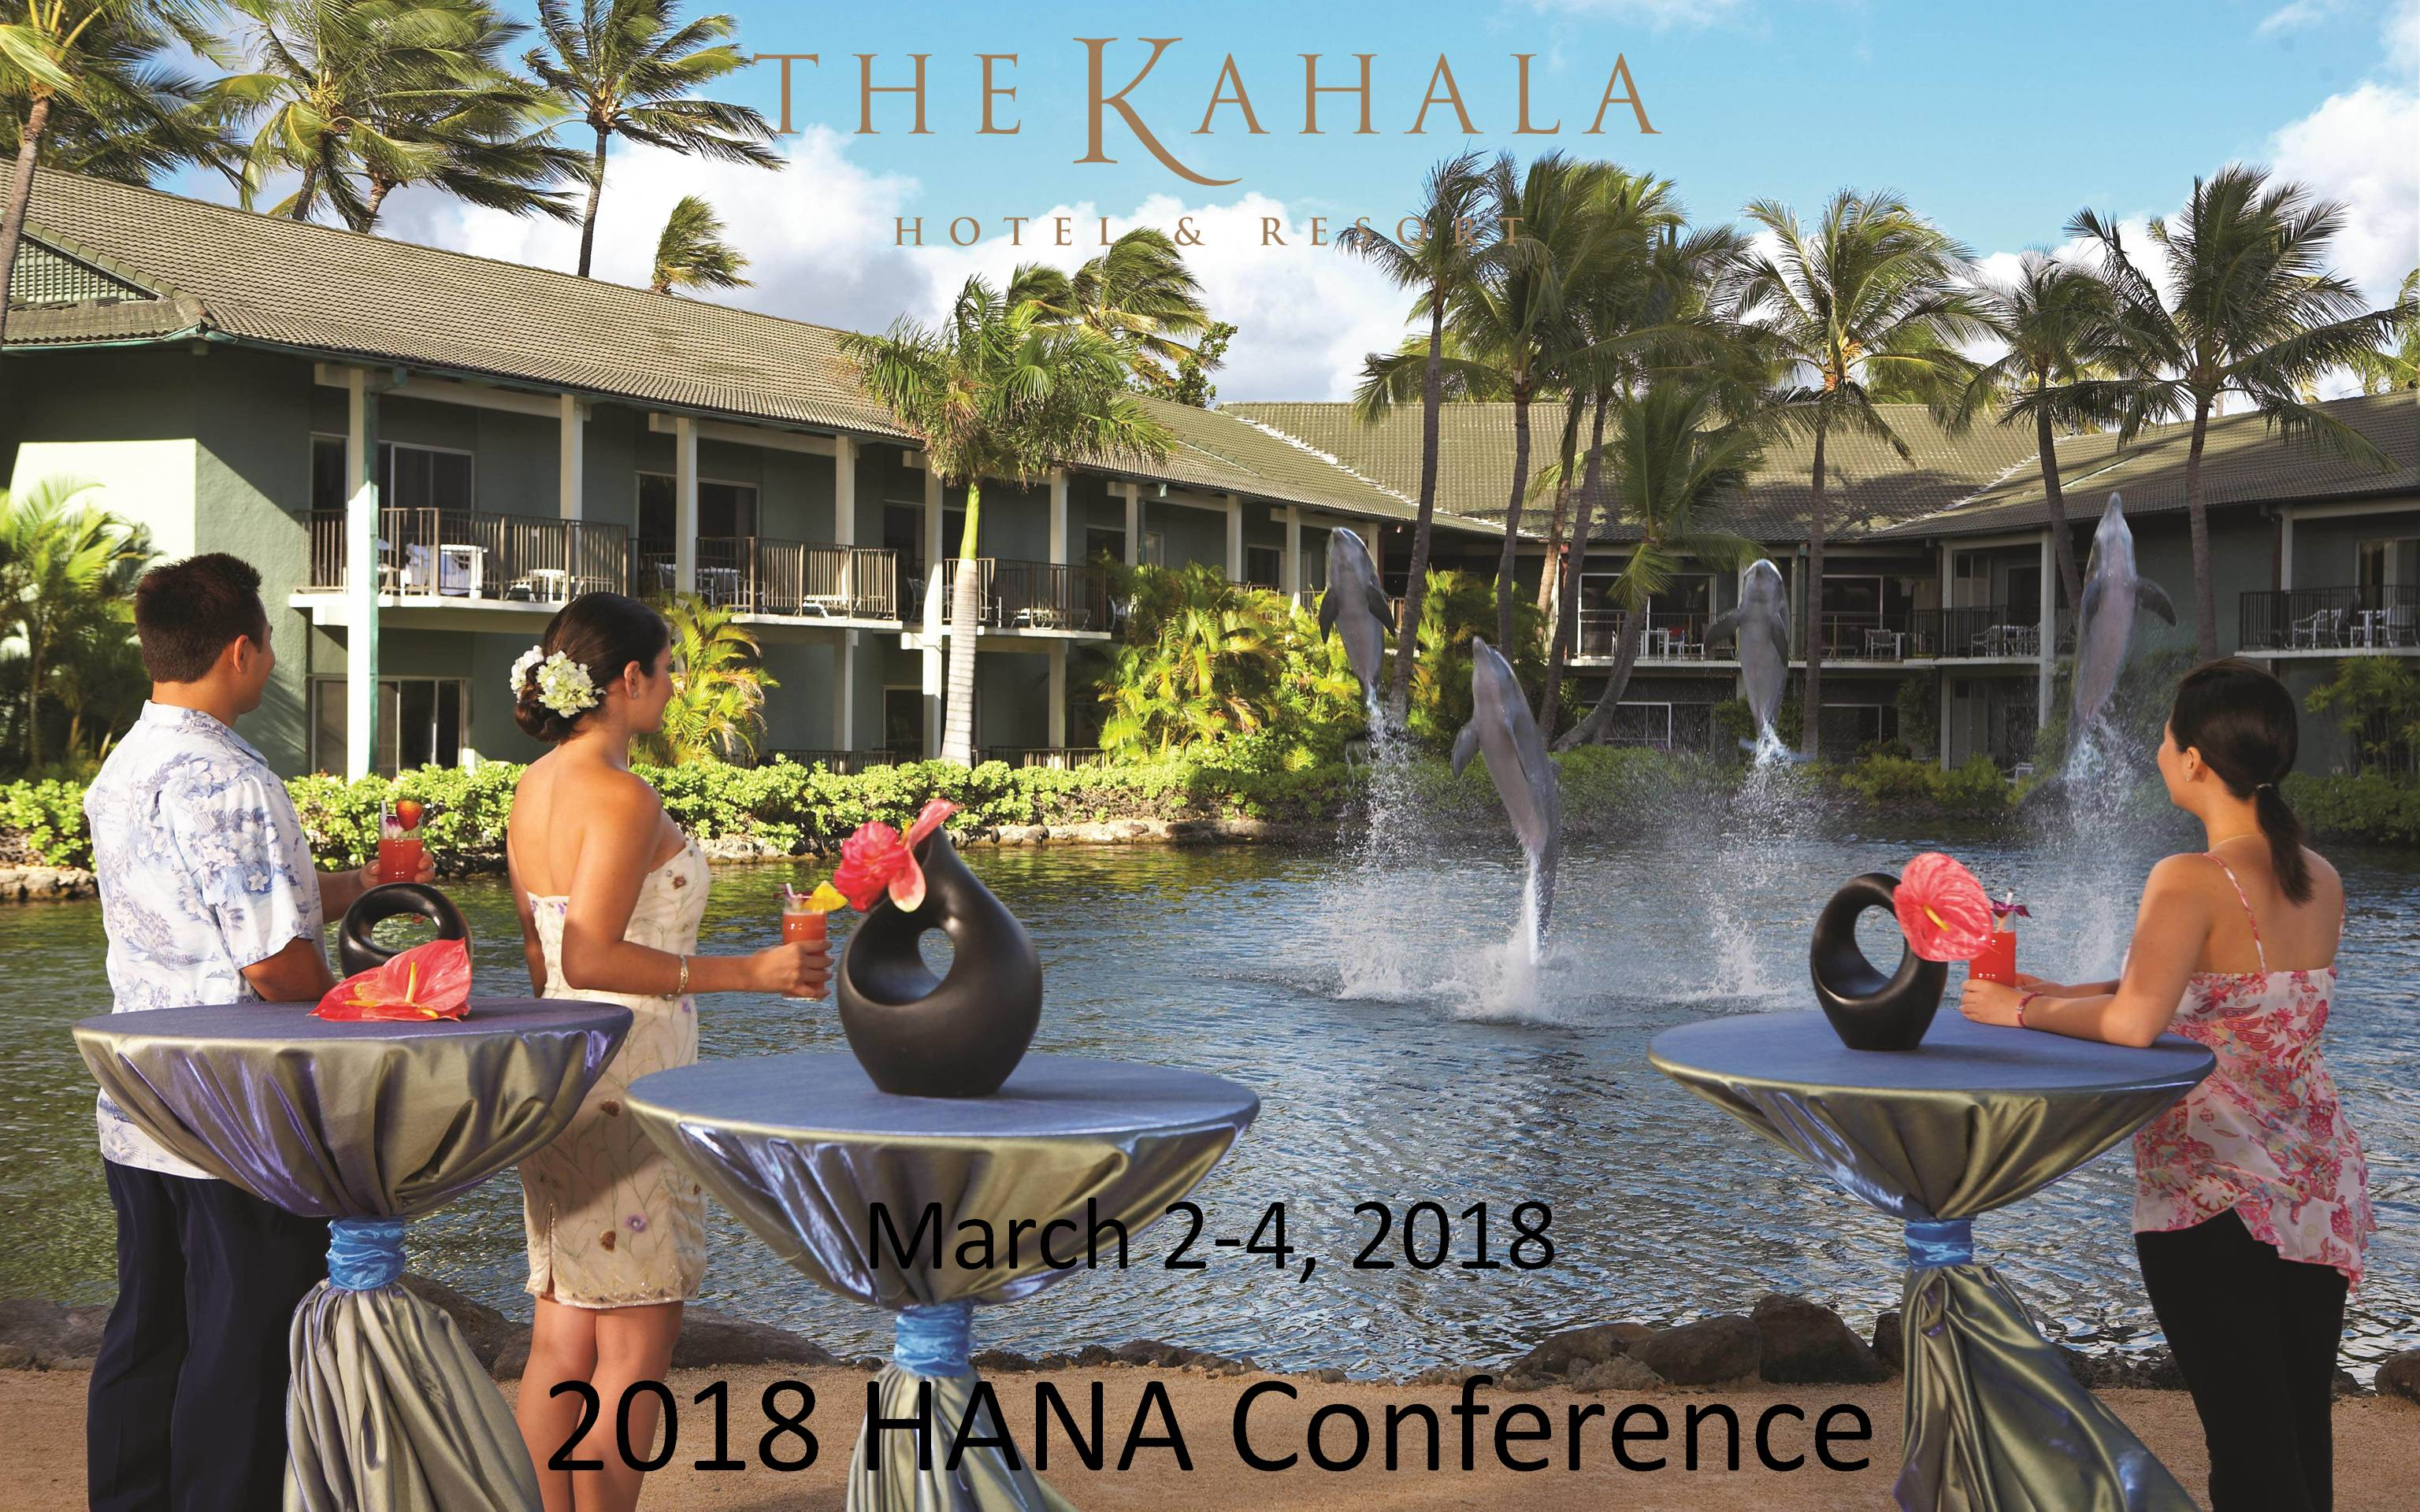 10 Days to HANA 2018! Registration still available, no late penalty!